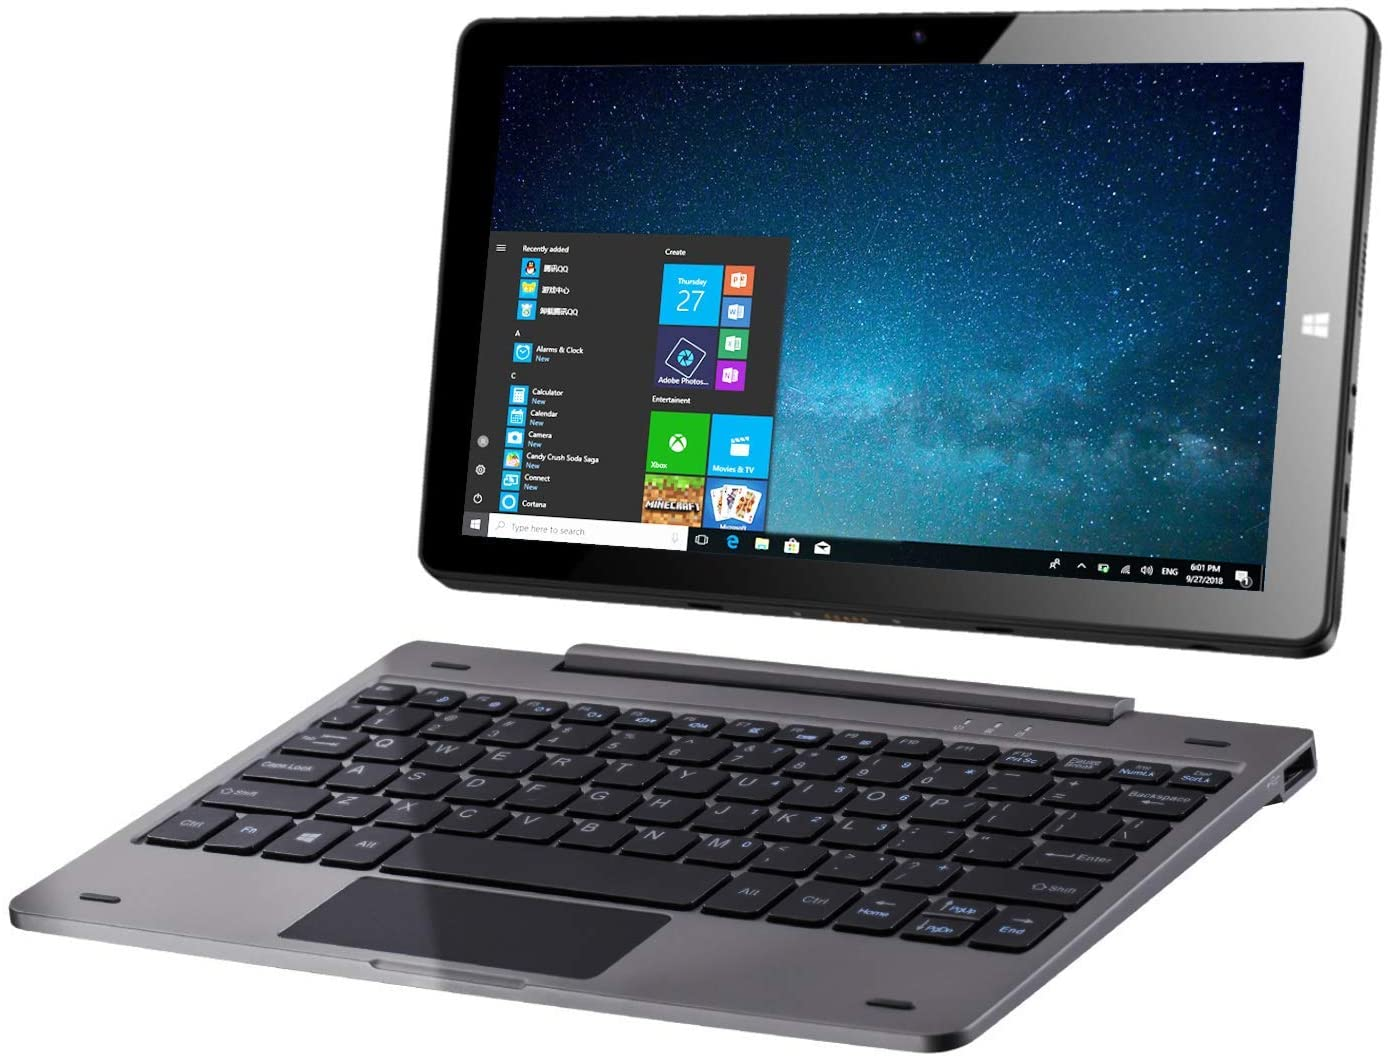 10.1 Windows 10 Tablet PC 2 in 1 laptop touchscreen, Intel Quad core 1,44 Ghz / 4 GB RAM + 64 GB layout US QWERTY / IPS / Doppia fotocamera / MicroMobile Office / Wi-Fi / Bluetooth 4.0 / USB / HDMI